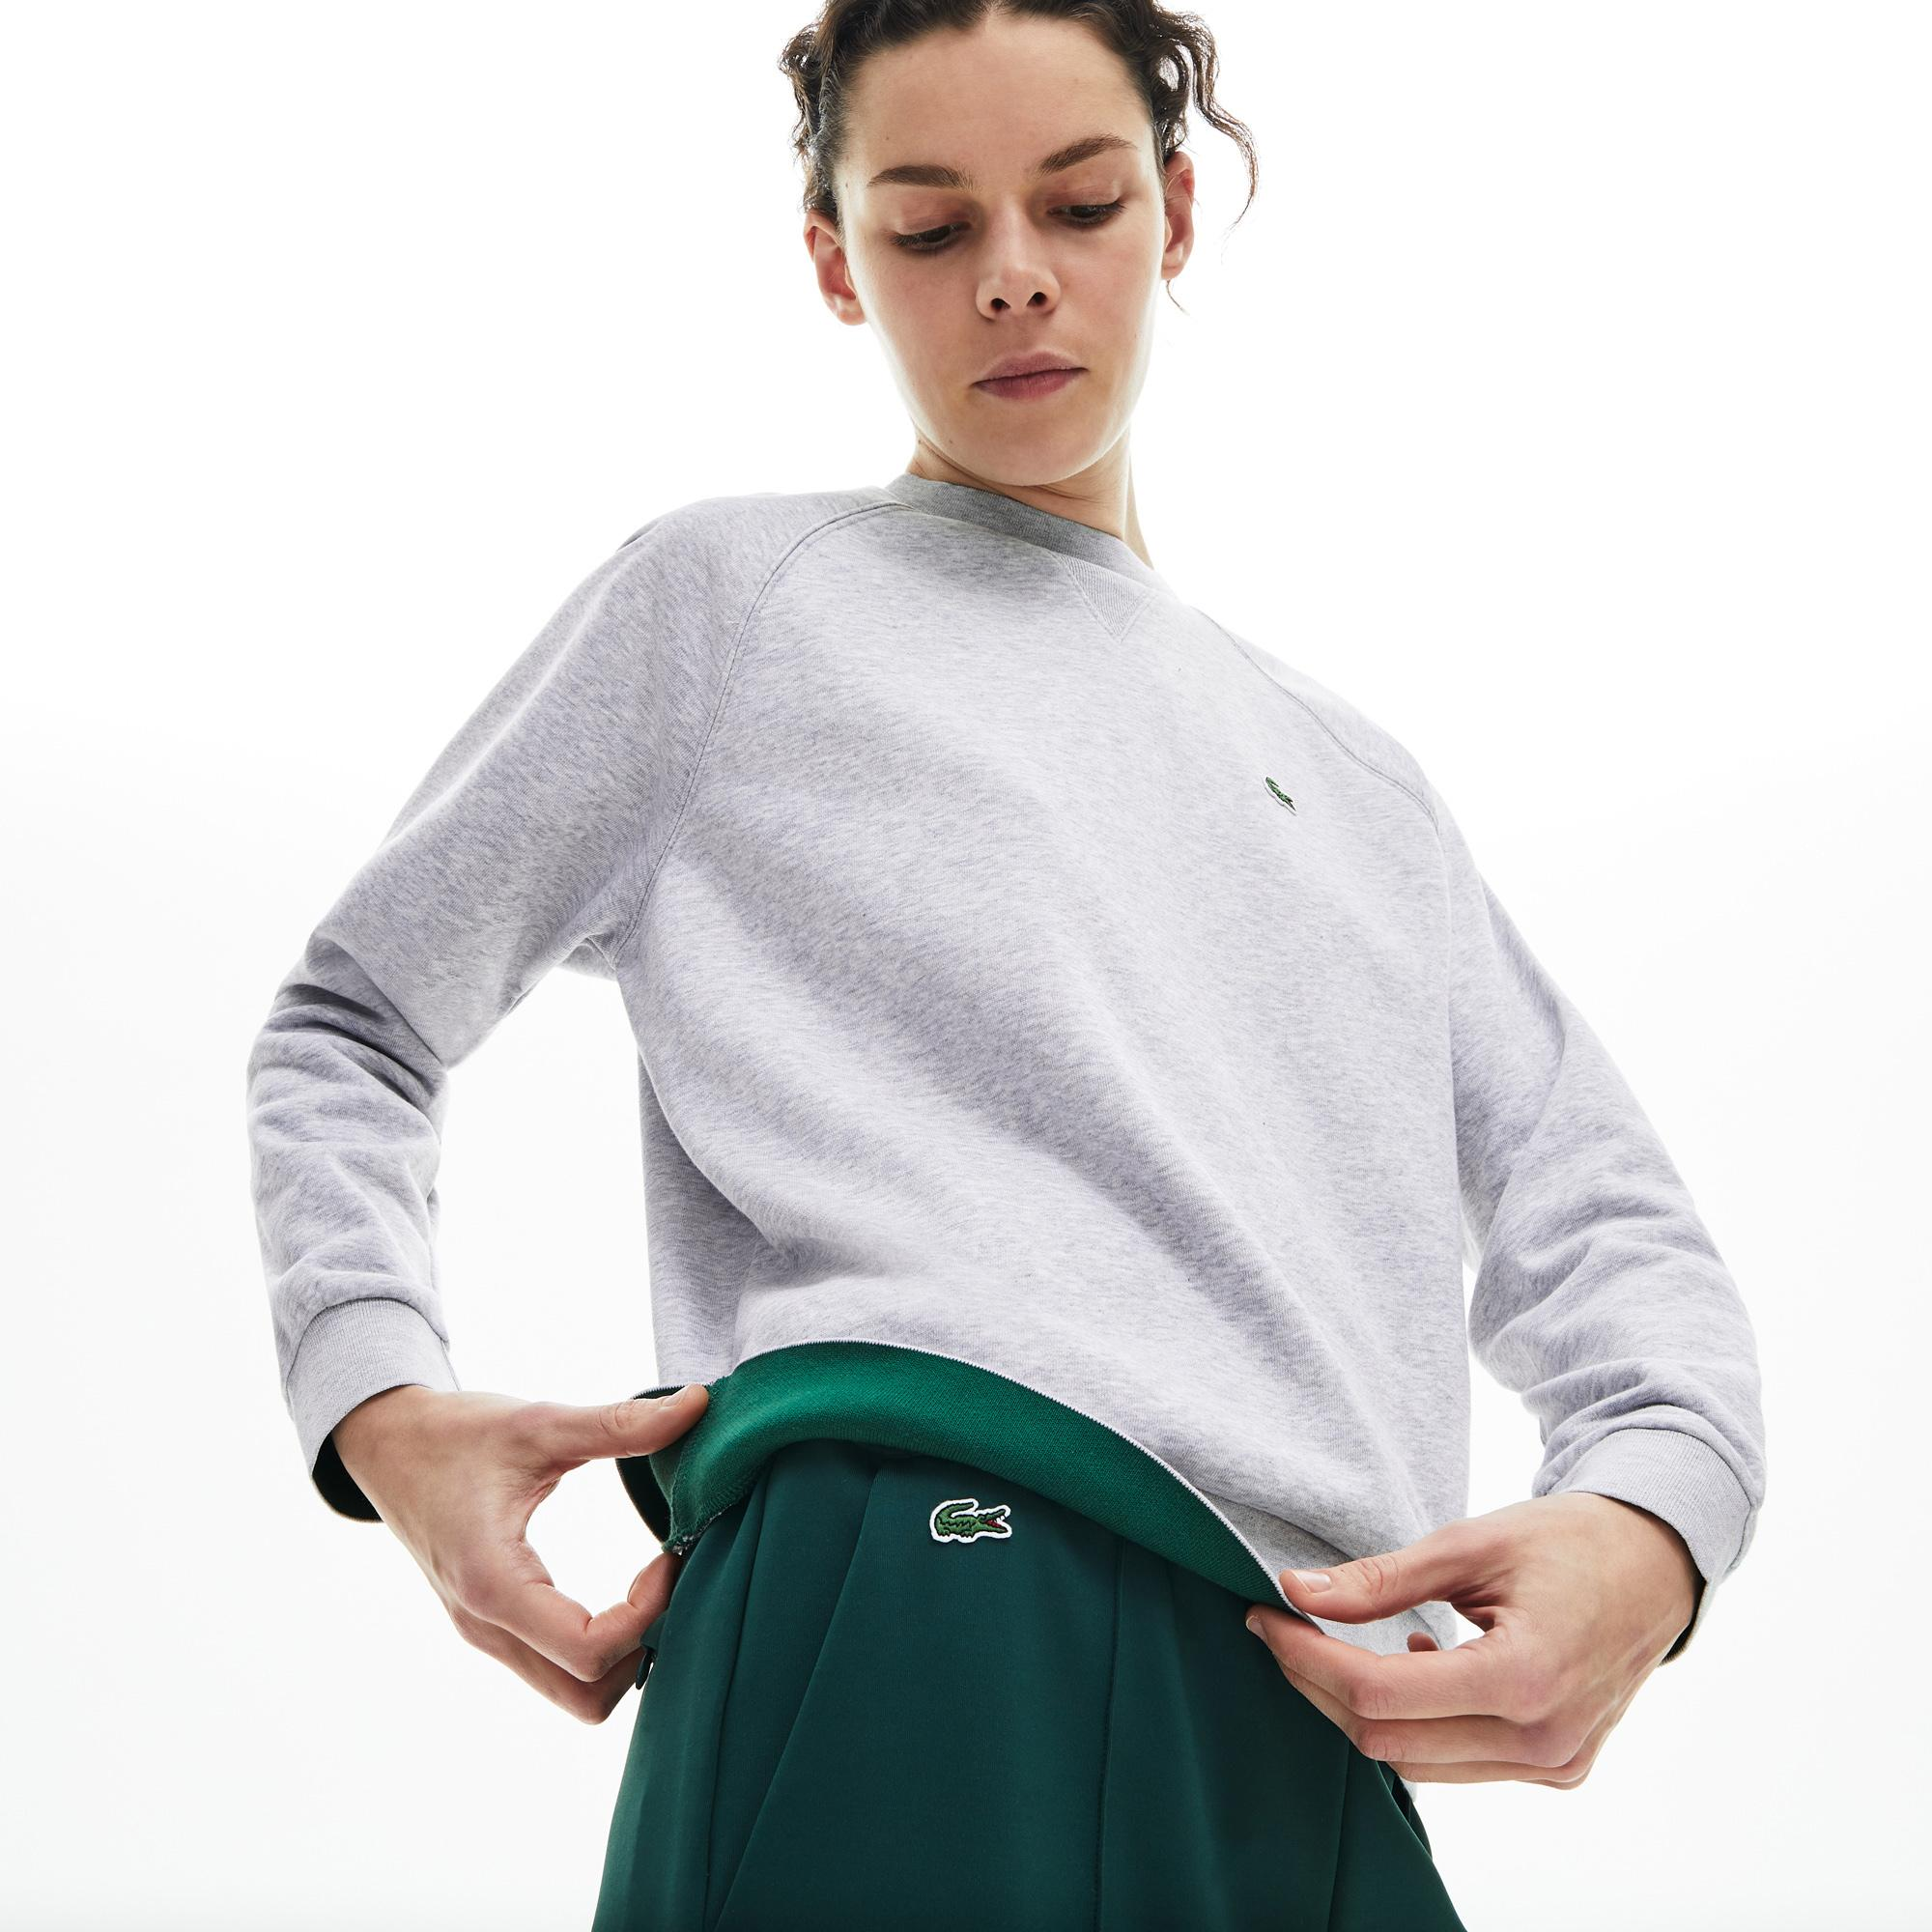 Lacoste Women's Classic Crew Neck Fleece Sweatshirt